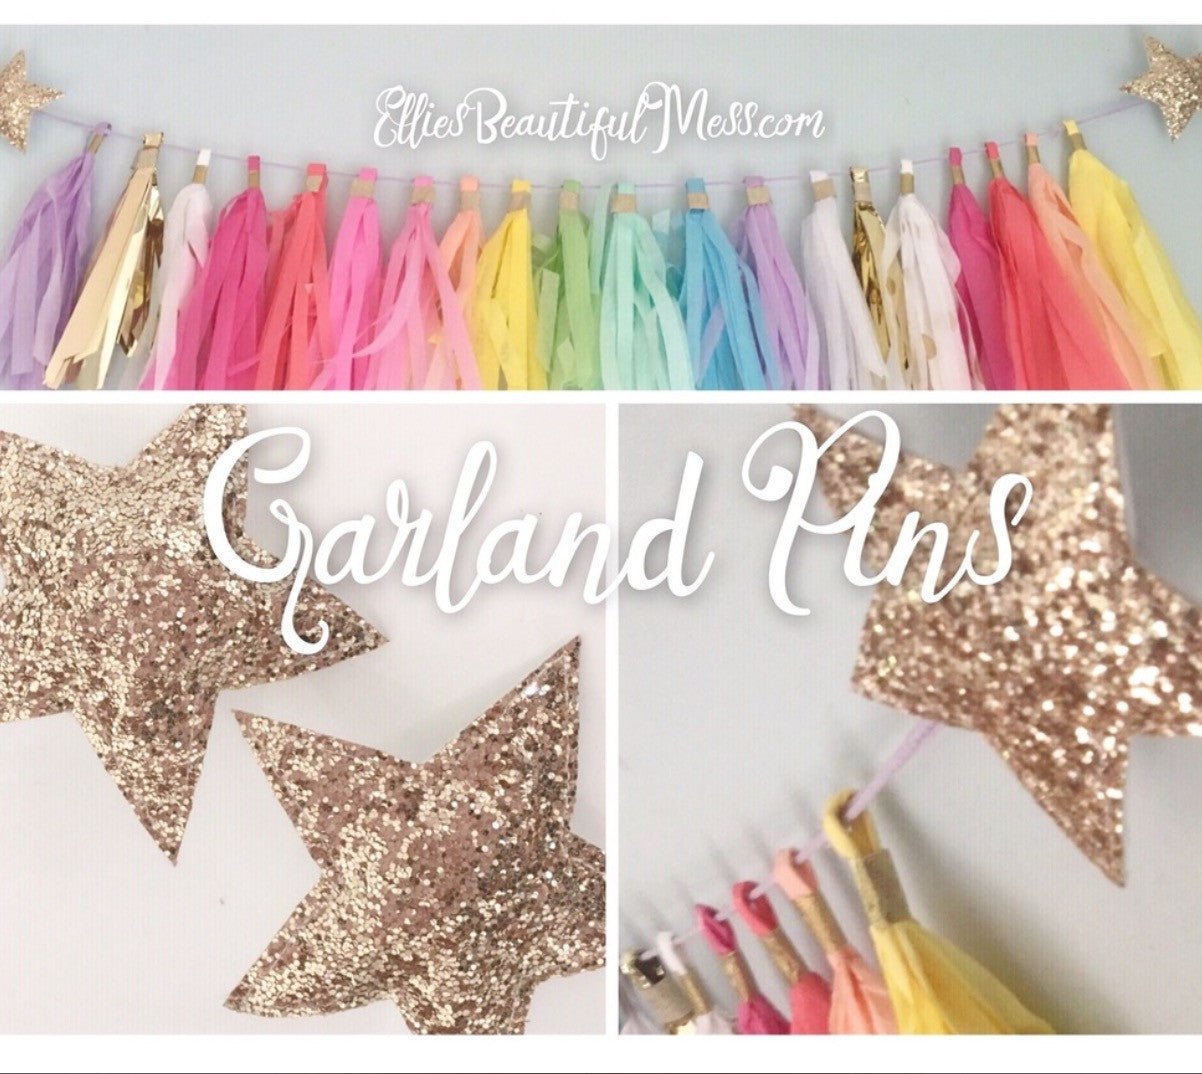 Set of Garland Pins